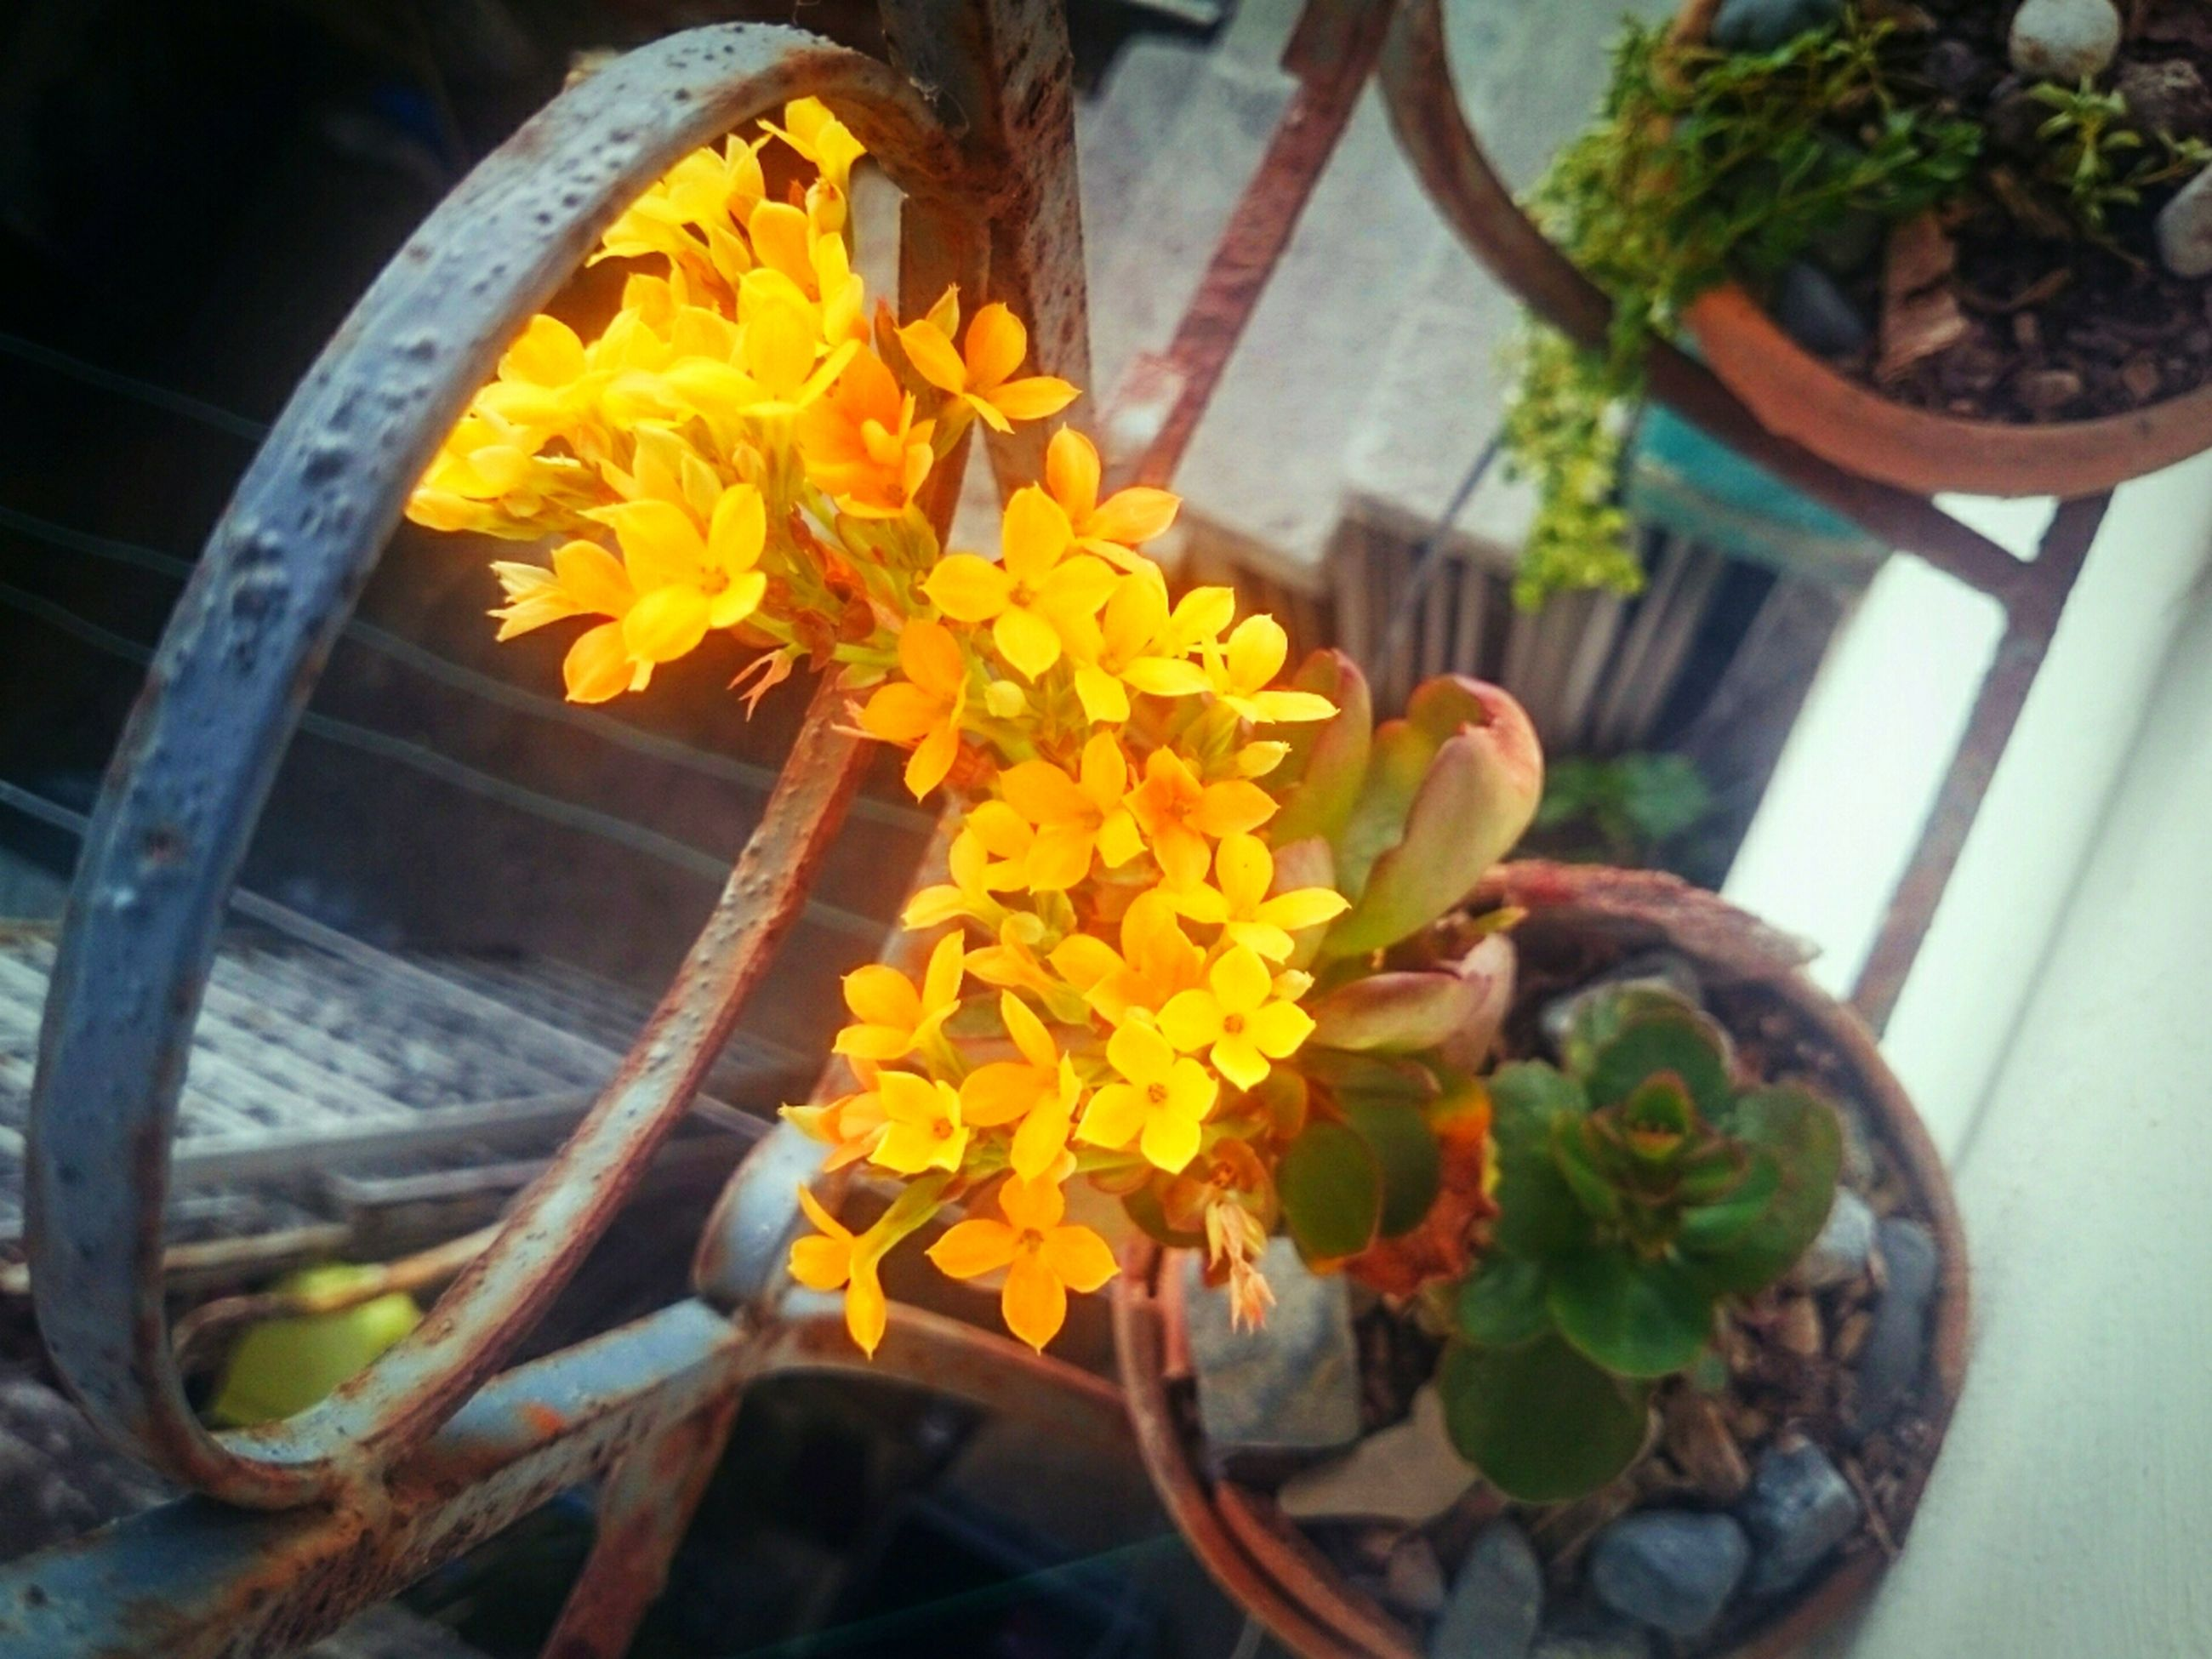 flower, freshness, yellow, petal, fragility, high angle view, flower head, plant, potted plant, beauty in nature, growth, leaf, close-up, nature, blooming, orange color, no people, day, outdoors, in bloom